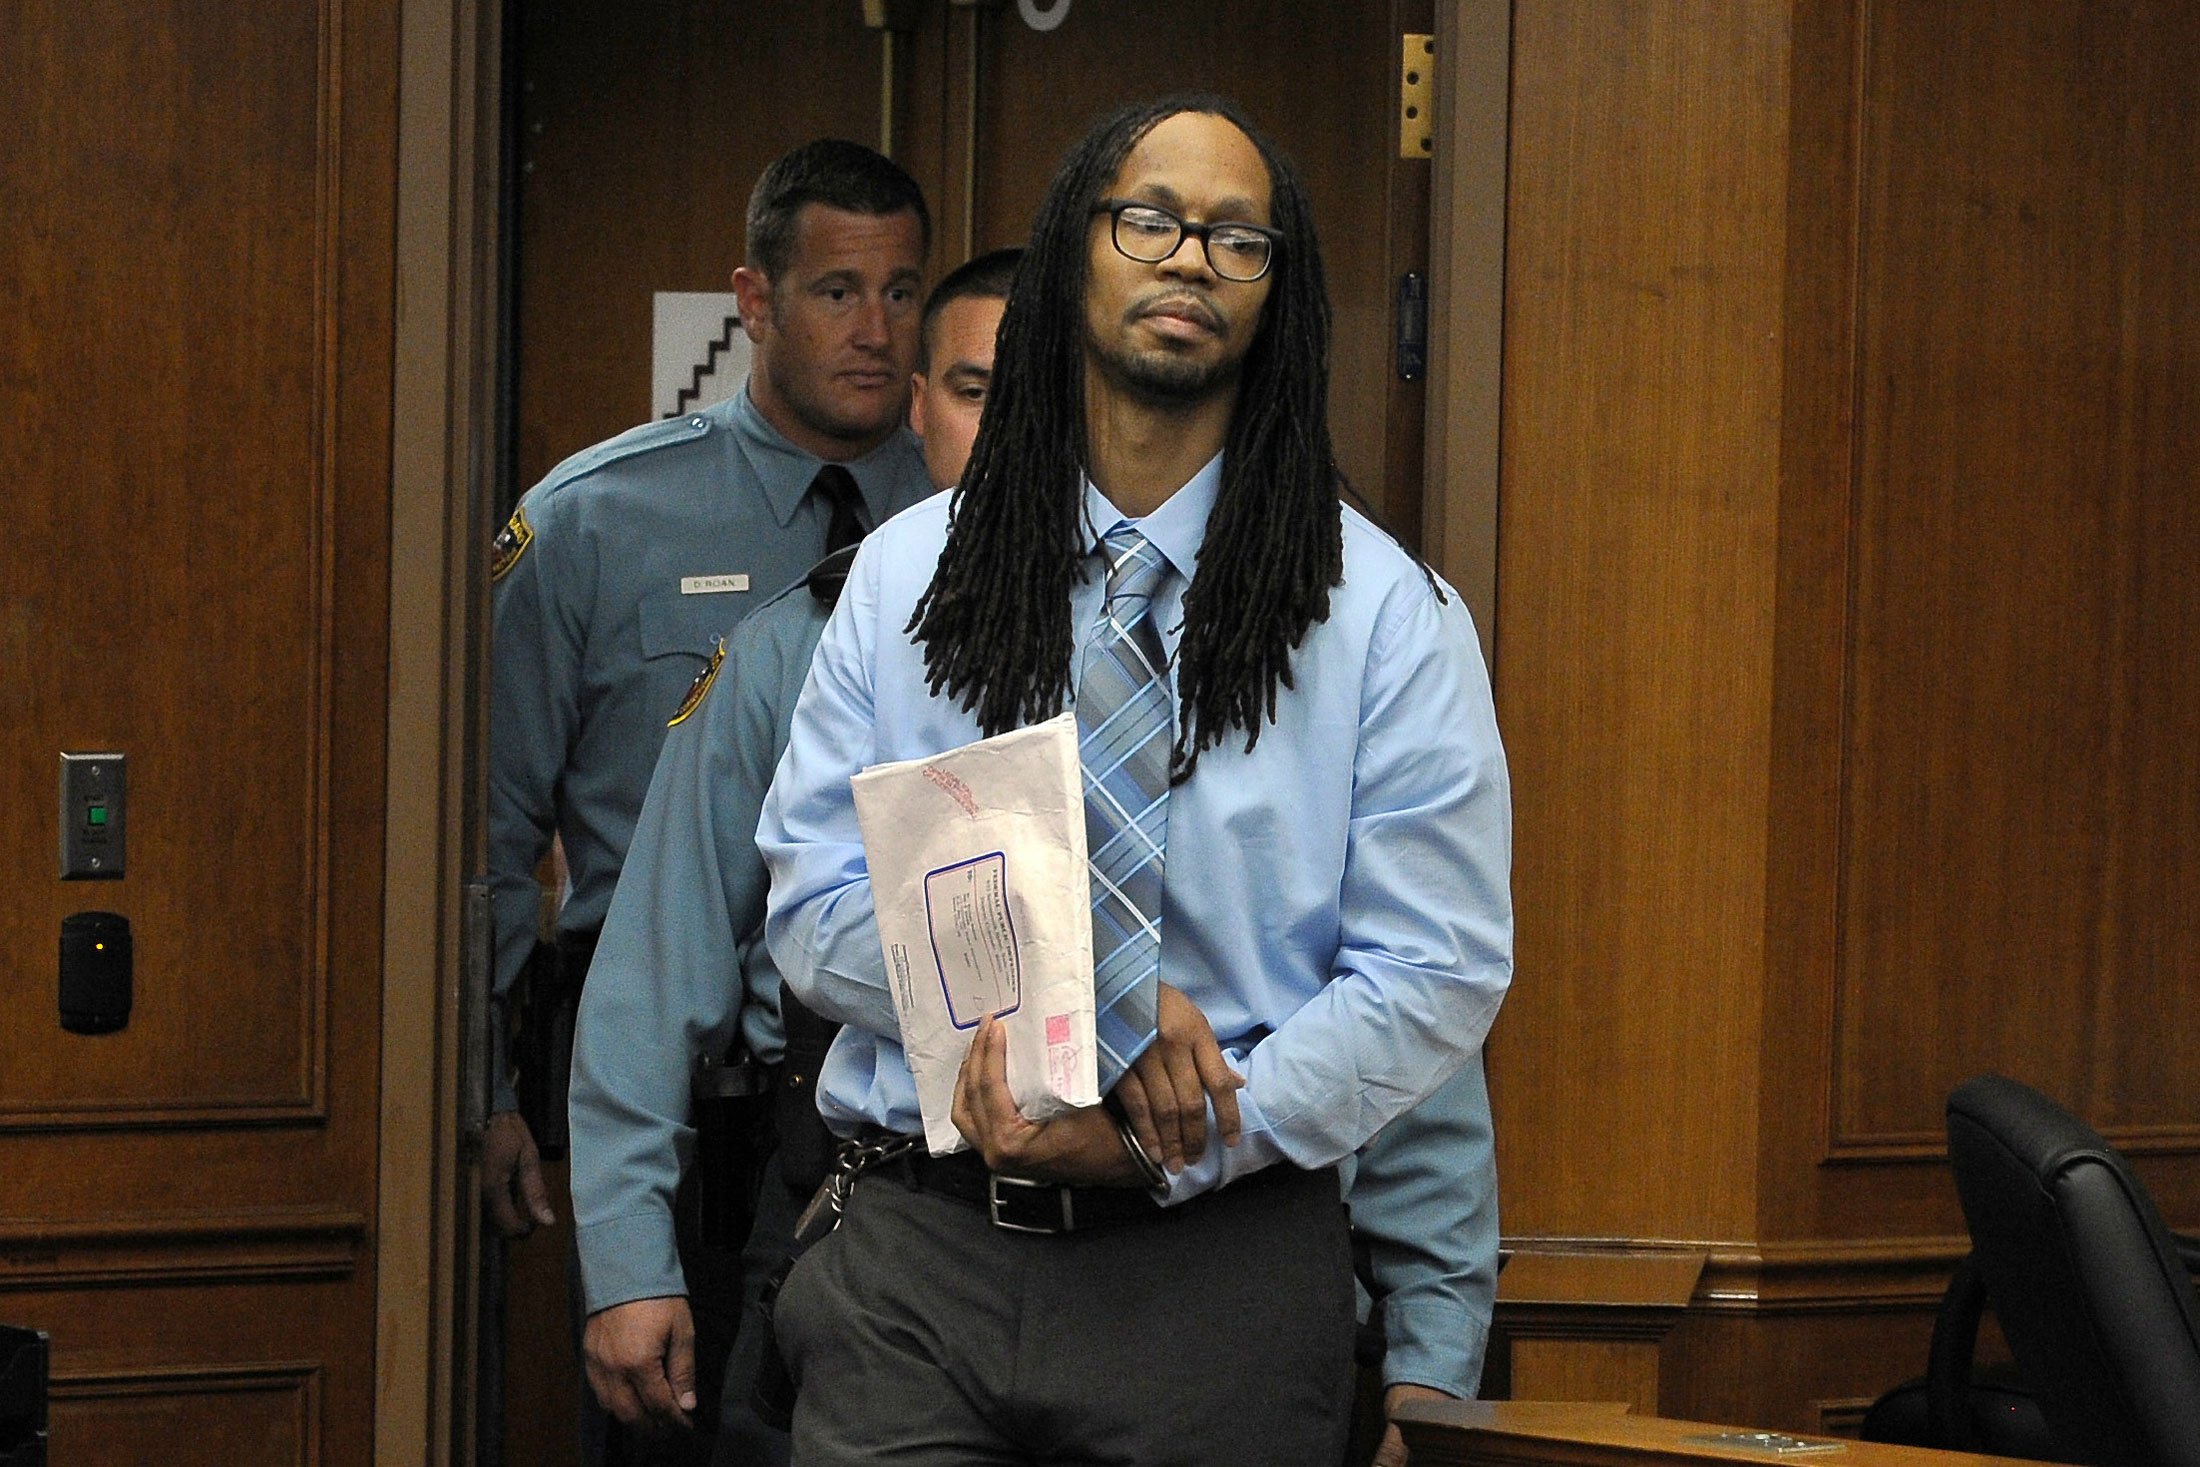 Nathan Dunlap appears for a hearing at Arapahoe County Court in Centennial, Colo., May 1, 2013.